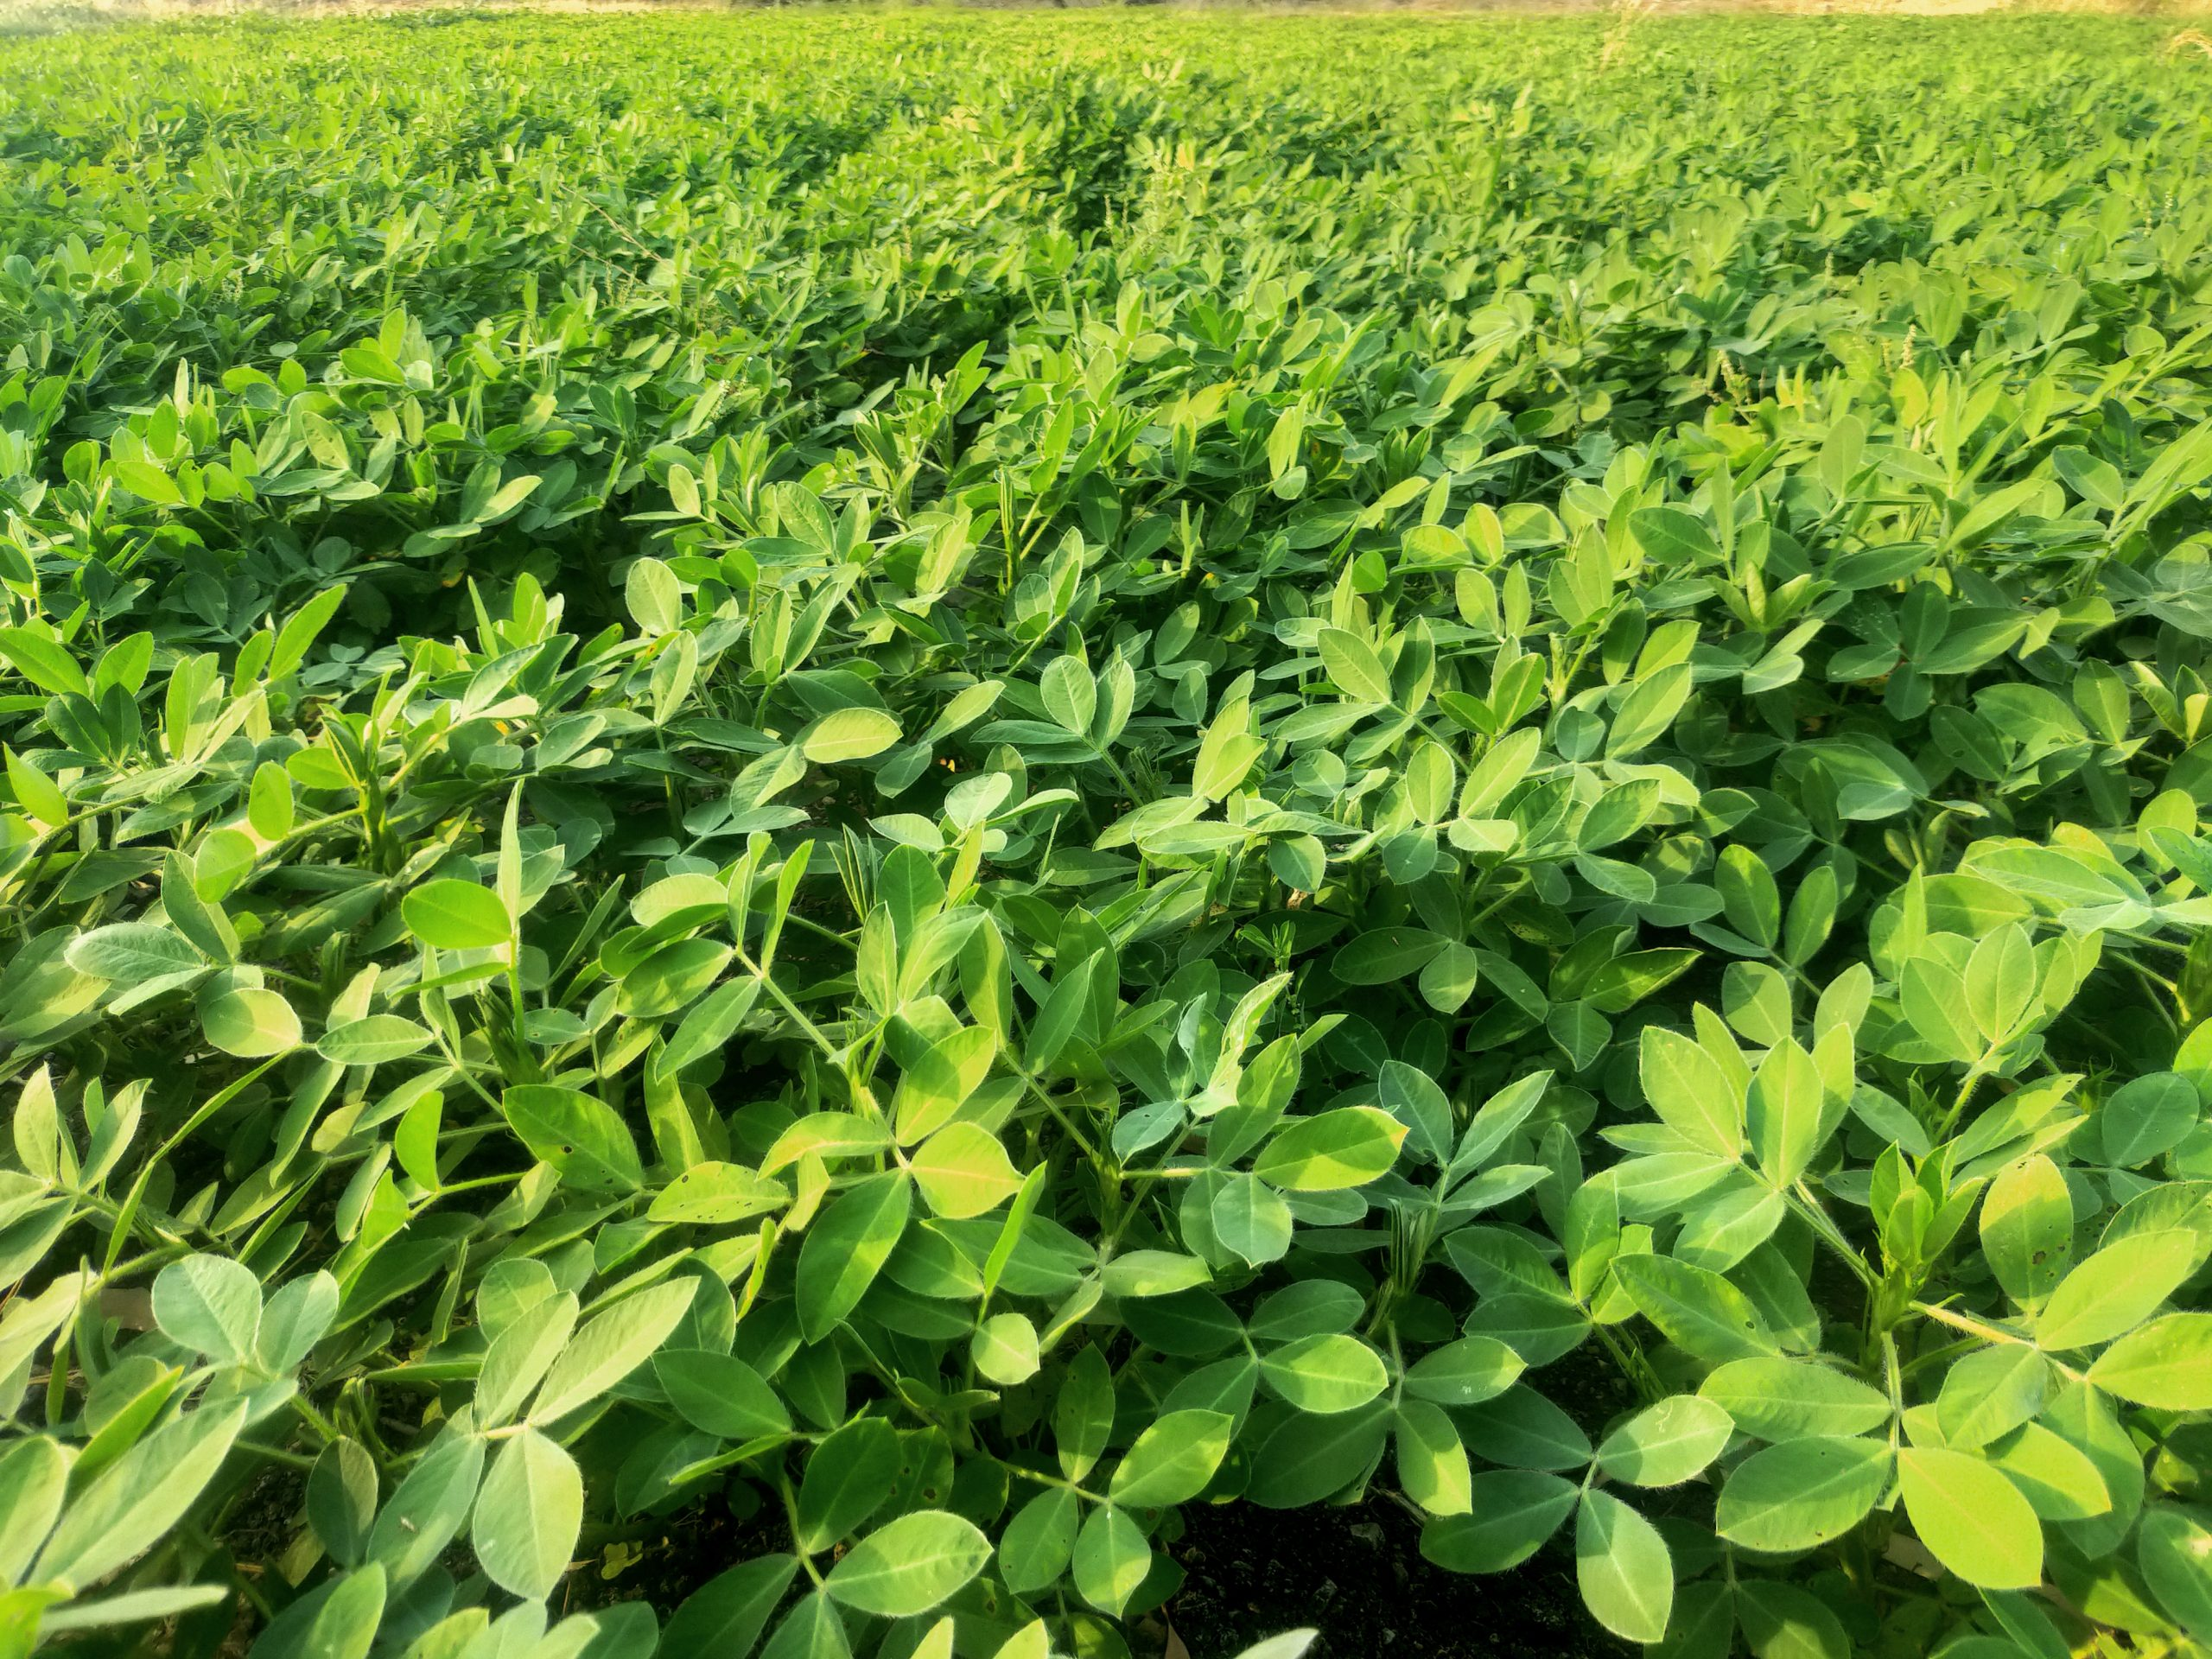 Greenery of ground nut plants